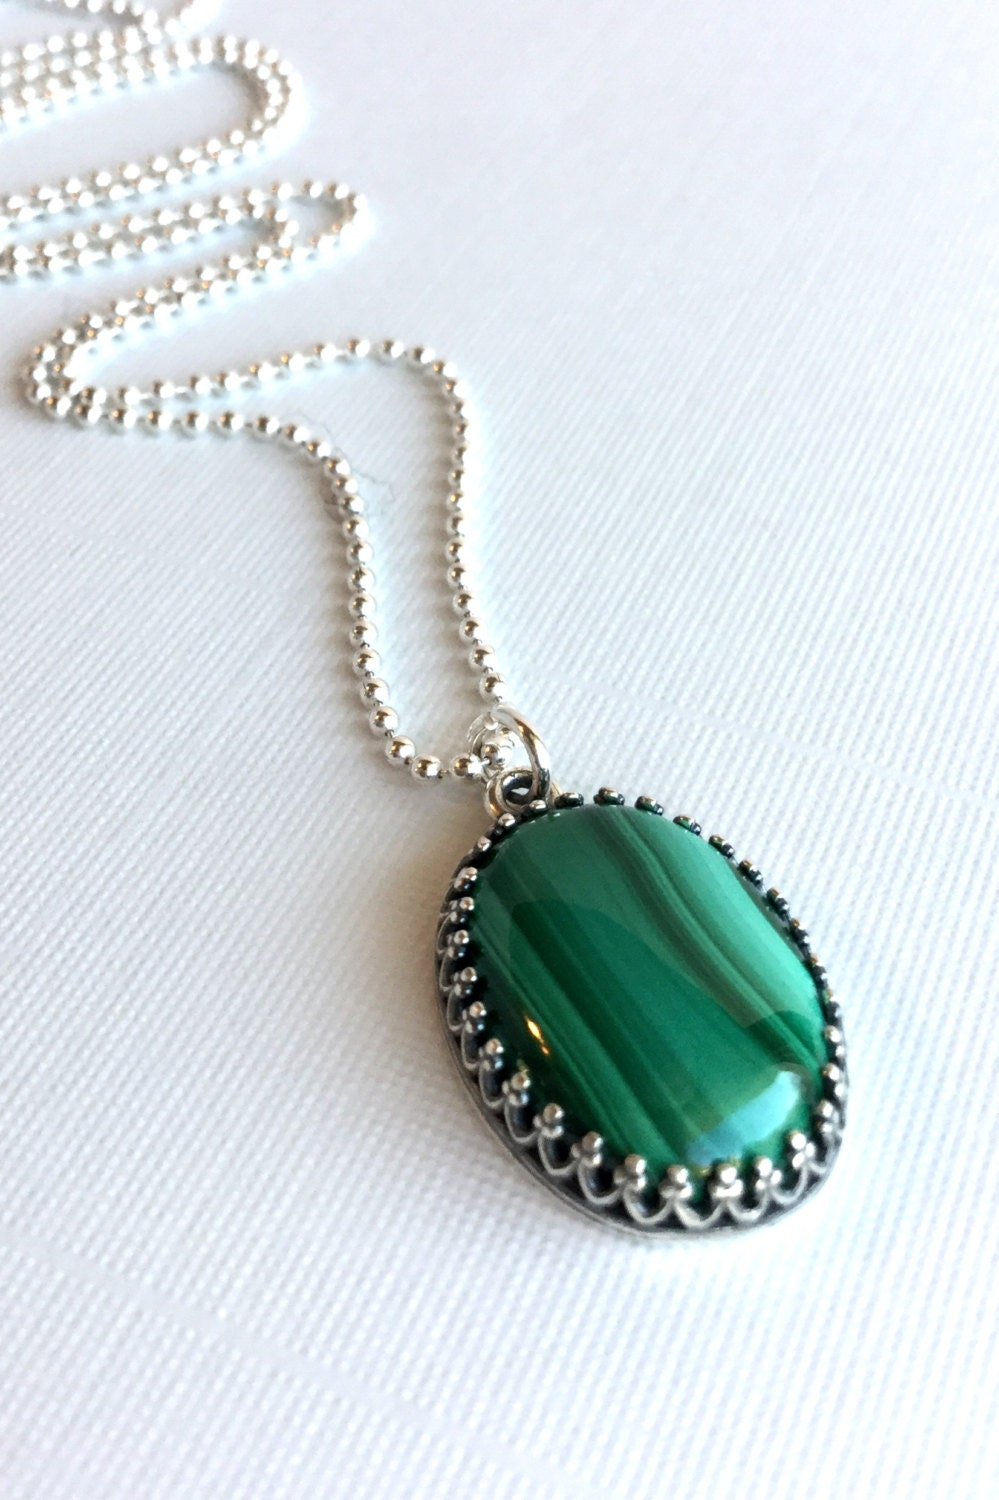 Natural Stone Jewelry : Green malachite necklace oval natural stone pendant emerald